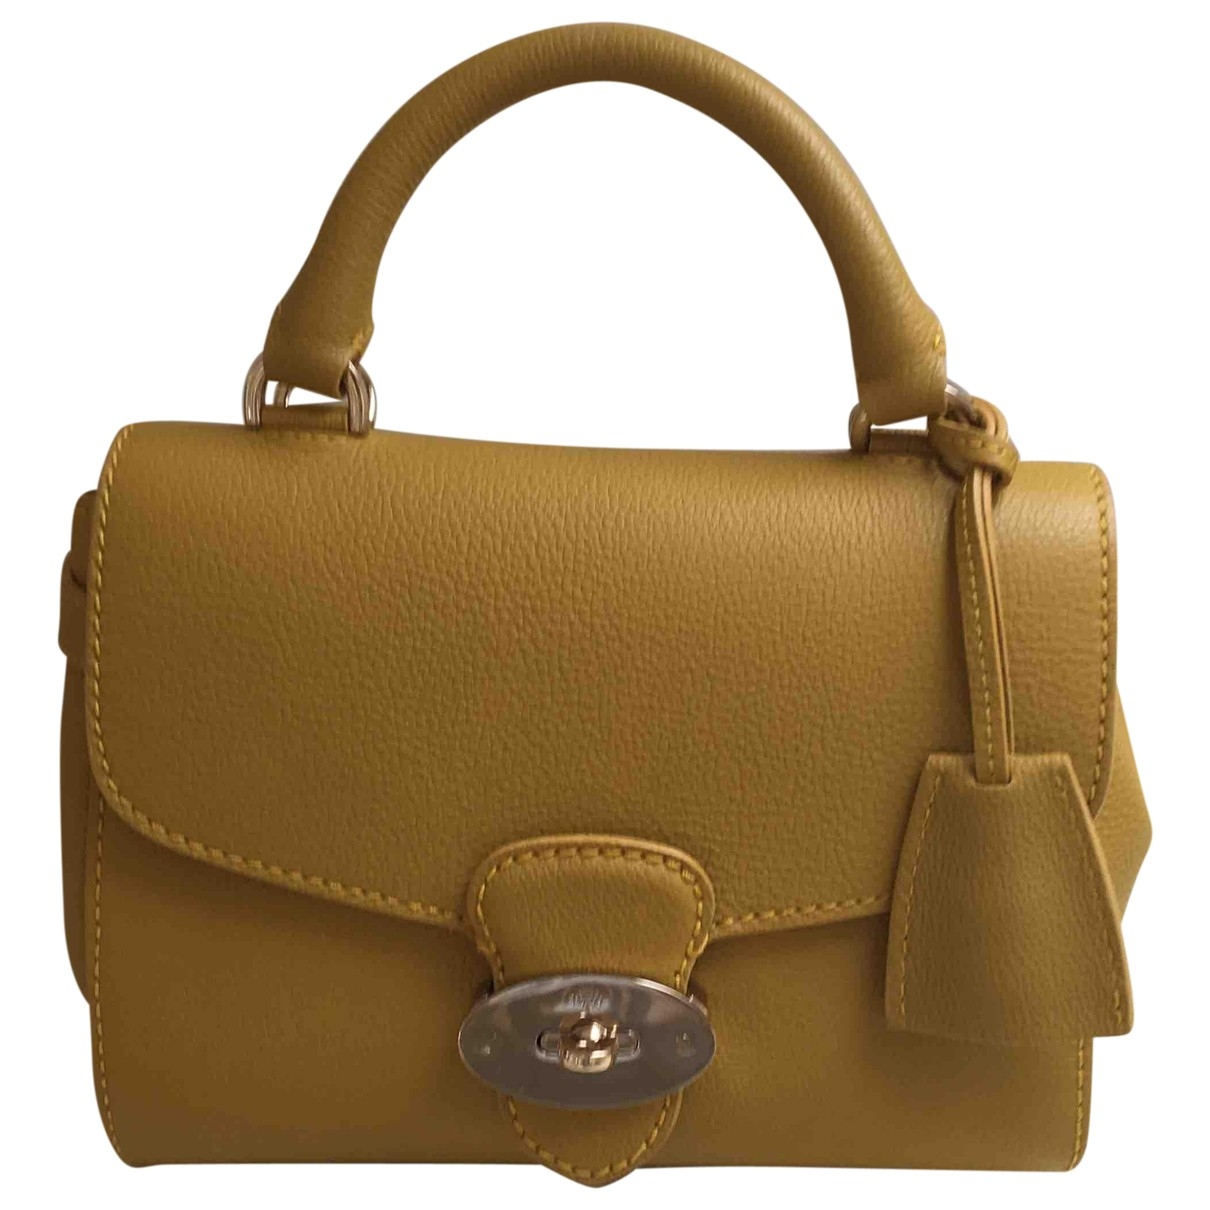 Mulberry \N Yellow Leather handbag for Women \N